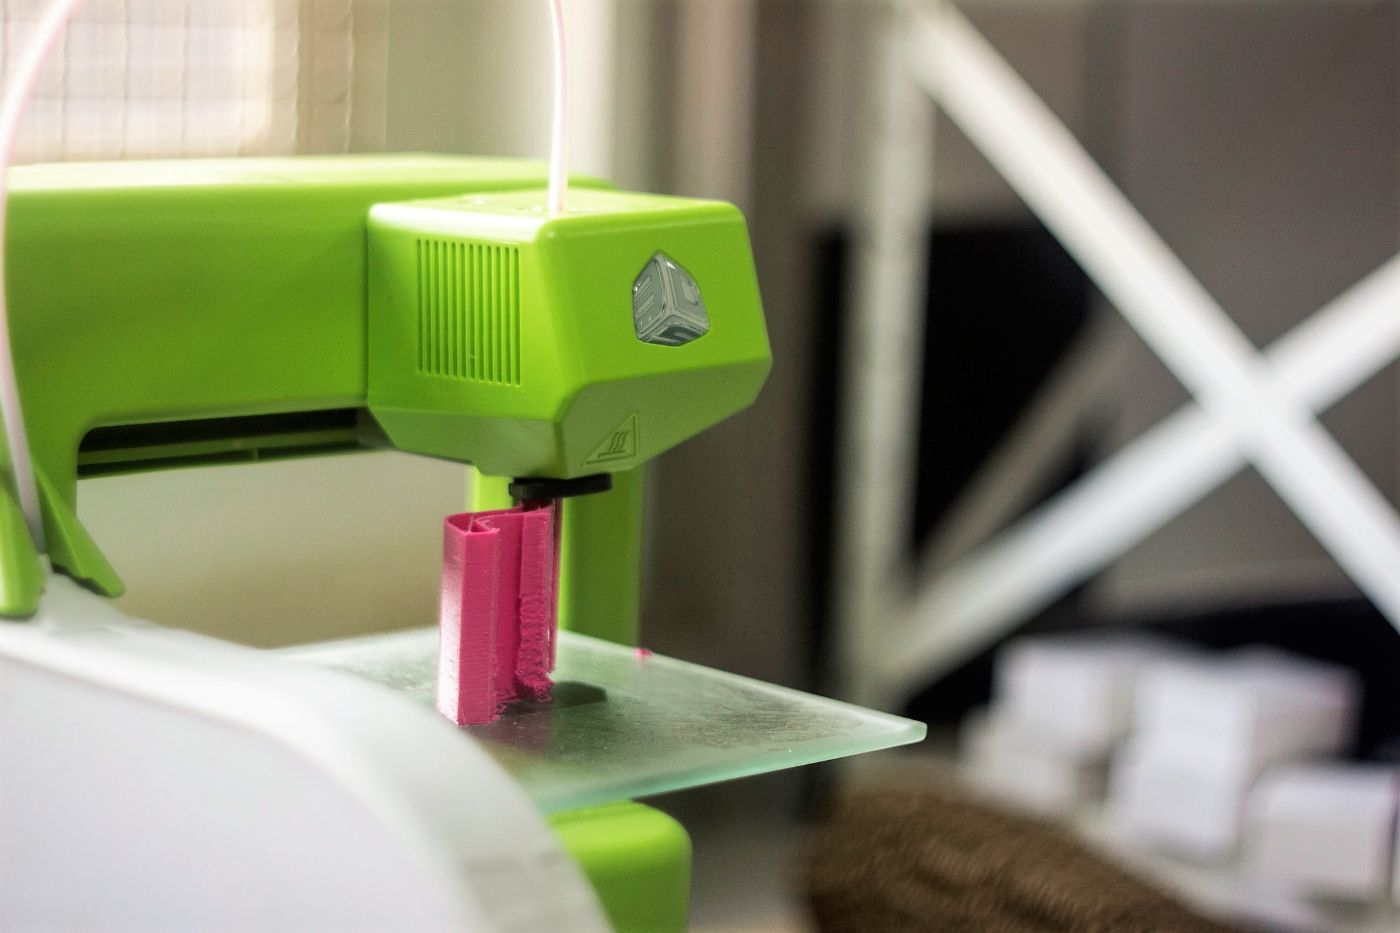 A neon green sewing machine